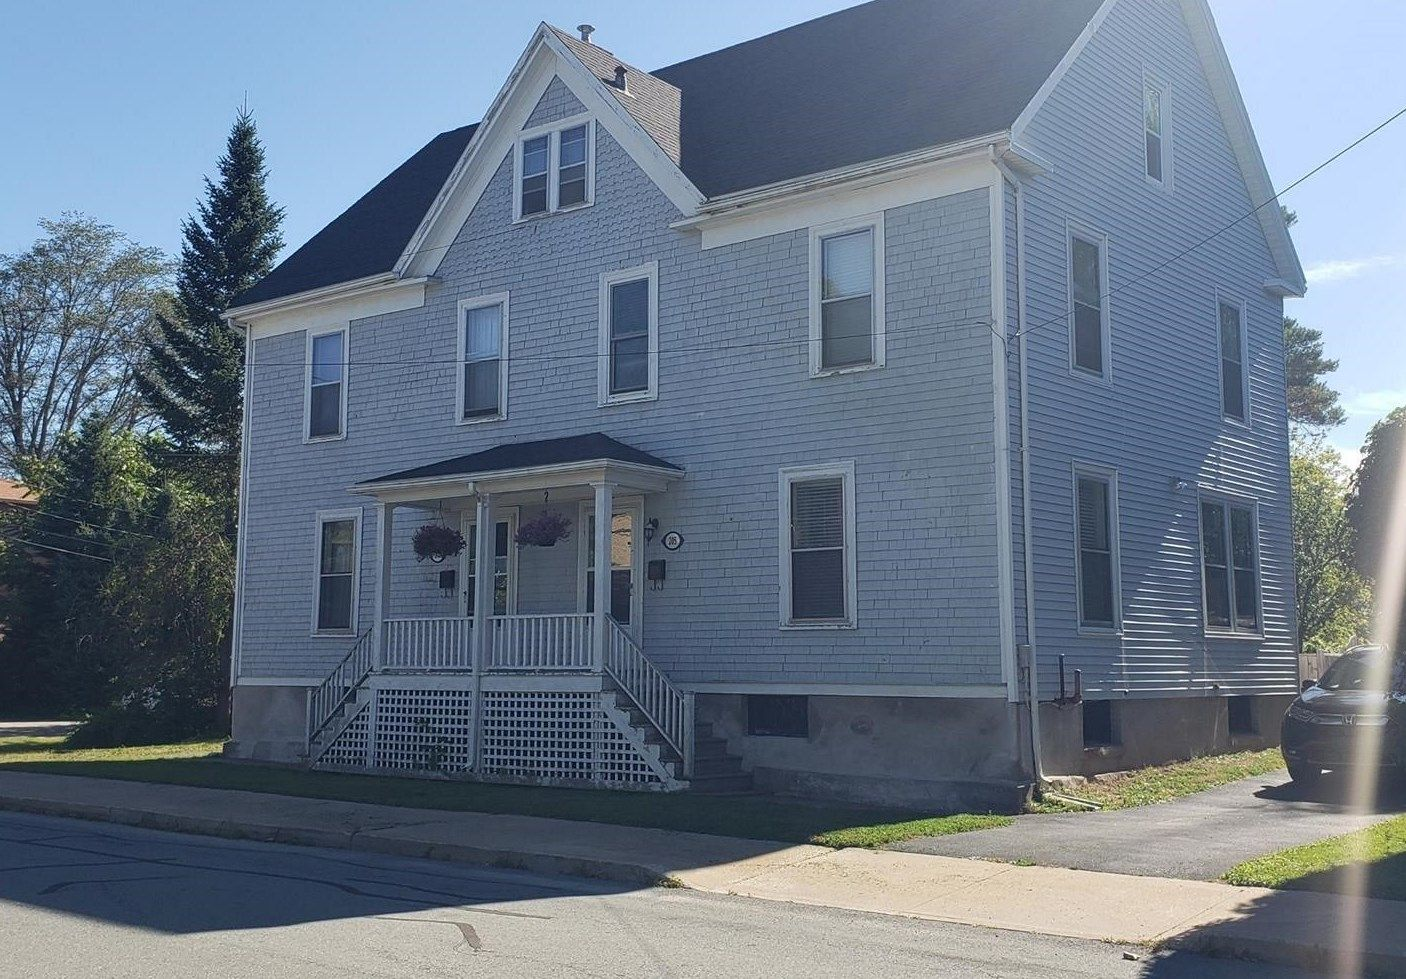 Main Photo: 203 Gray Street in Windsor: 403-Hants County Multi-Family for sale (Annapolis Valley)  : MLS®# 202110089